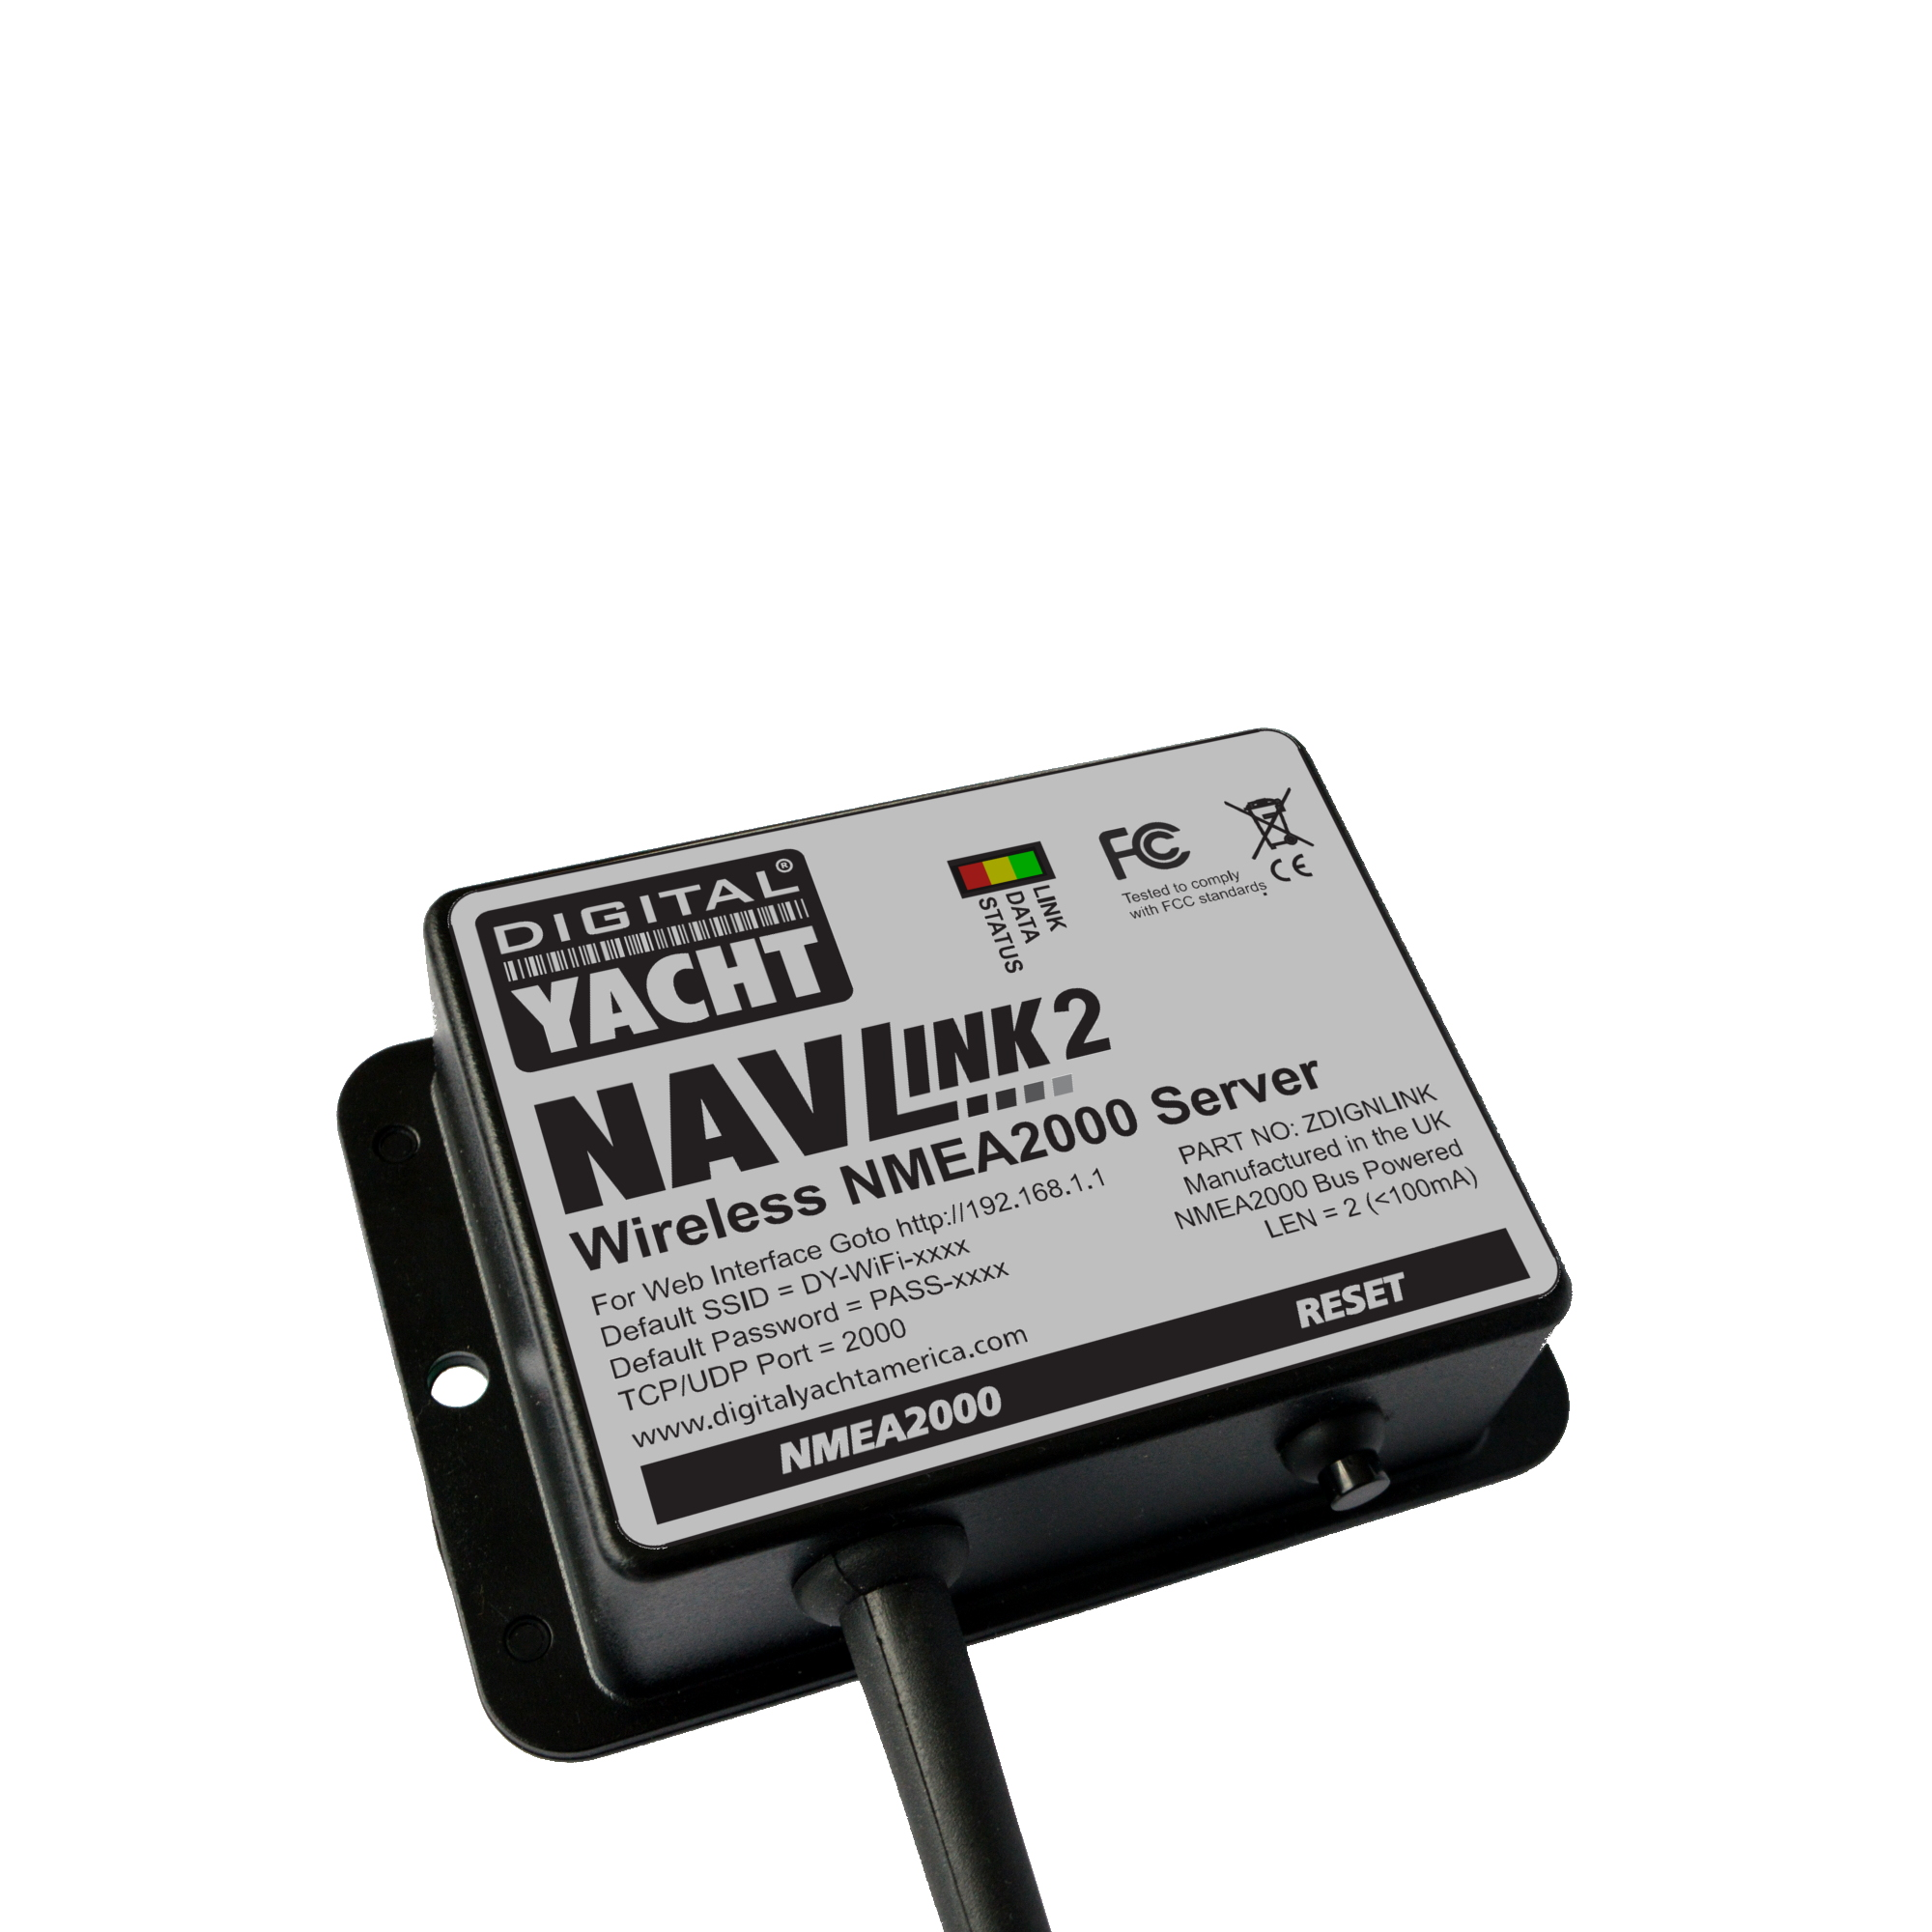 NavLink2 is an NMEA 2000 to WIfi server